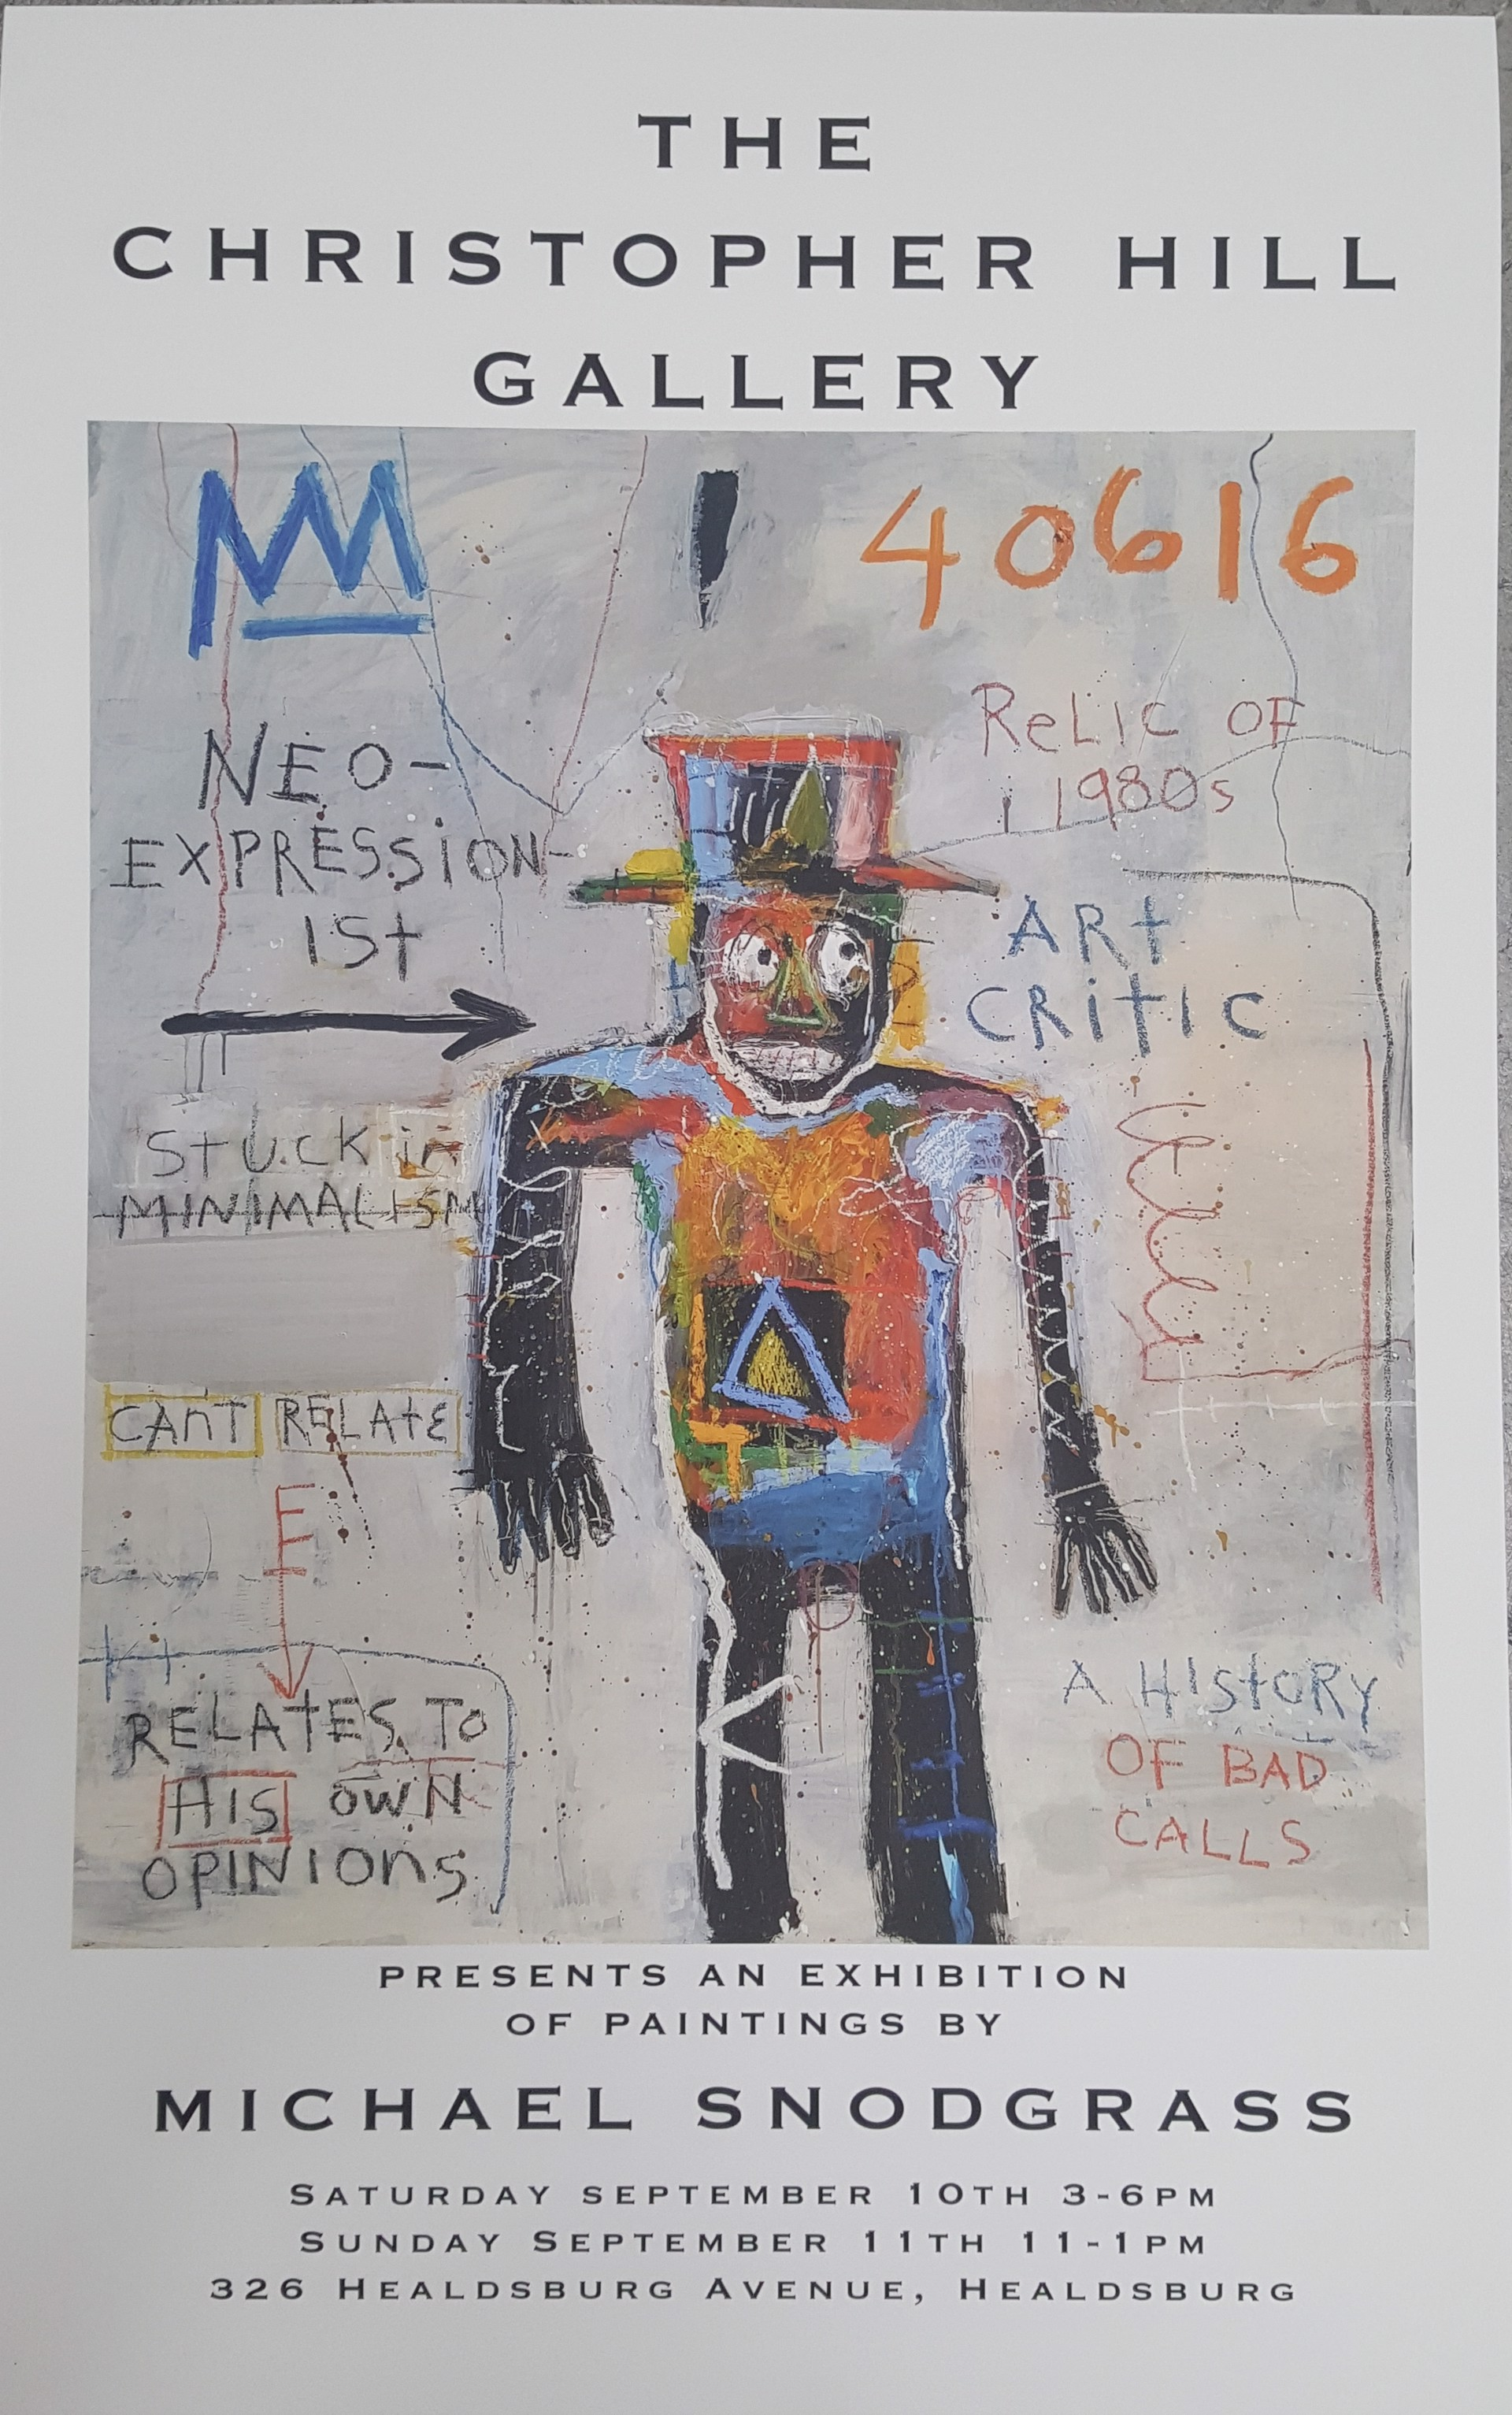 September 2016 Show Poster - Neo-Expressionist Art Critic - Signed by Artist by Michael Snodgrass